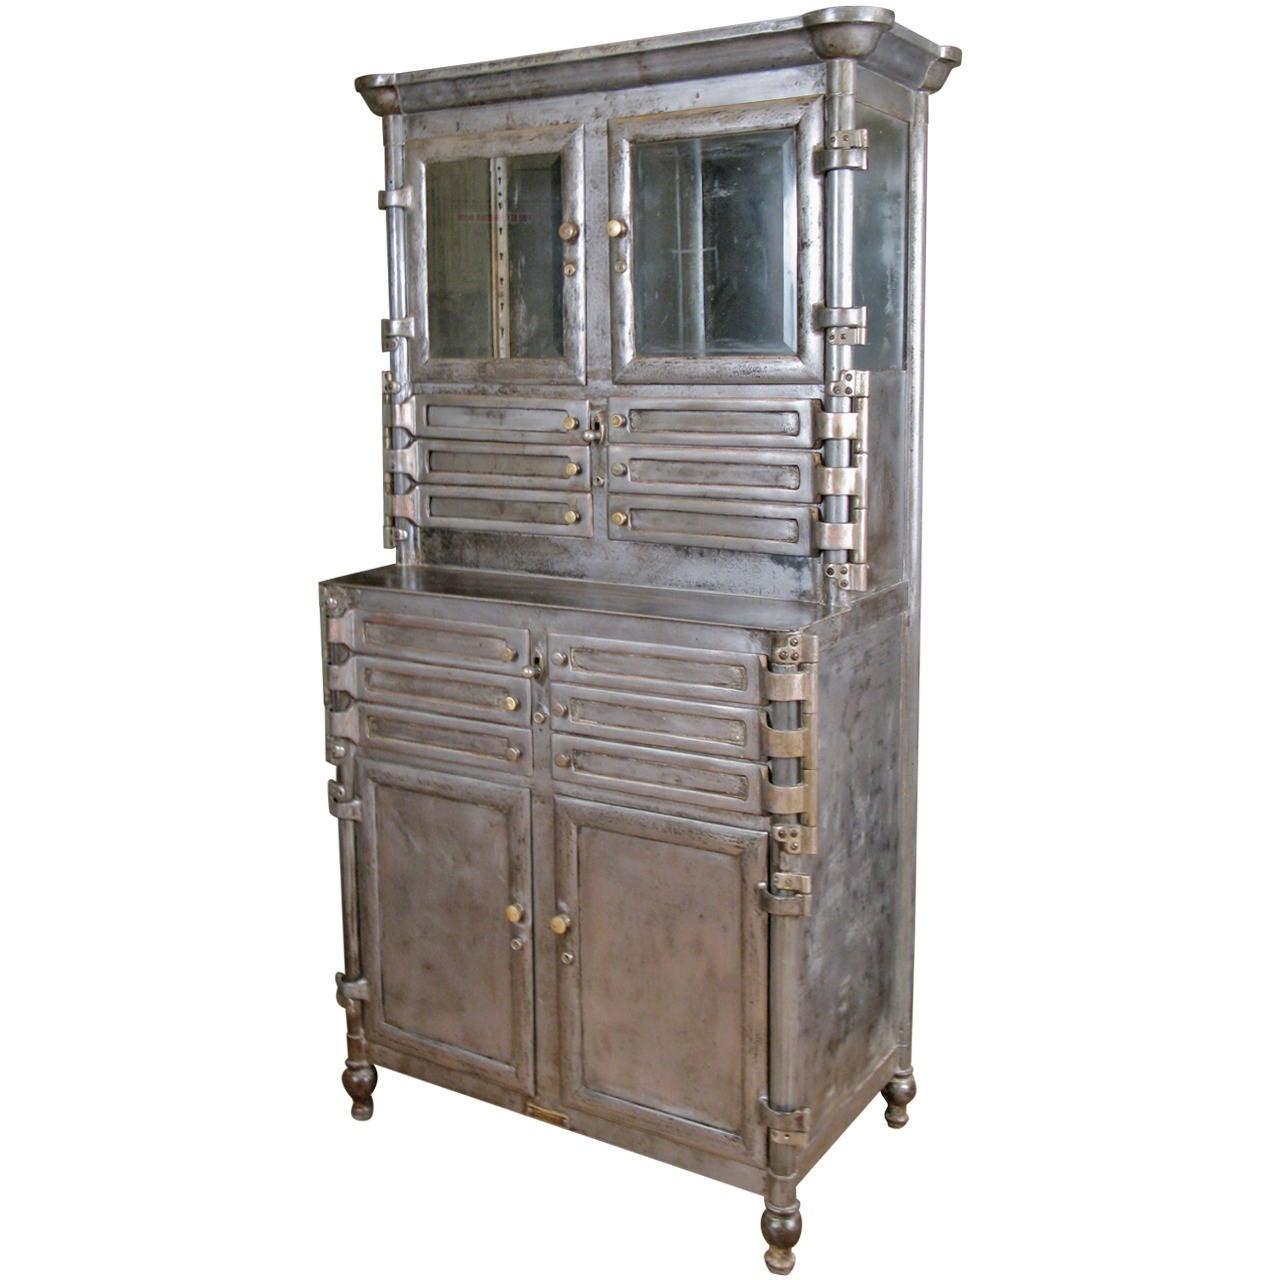 Antique Steel and Glass Medical Dental Cabinet at 1stdibs